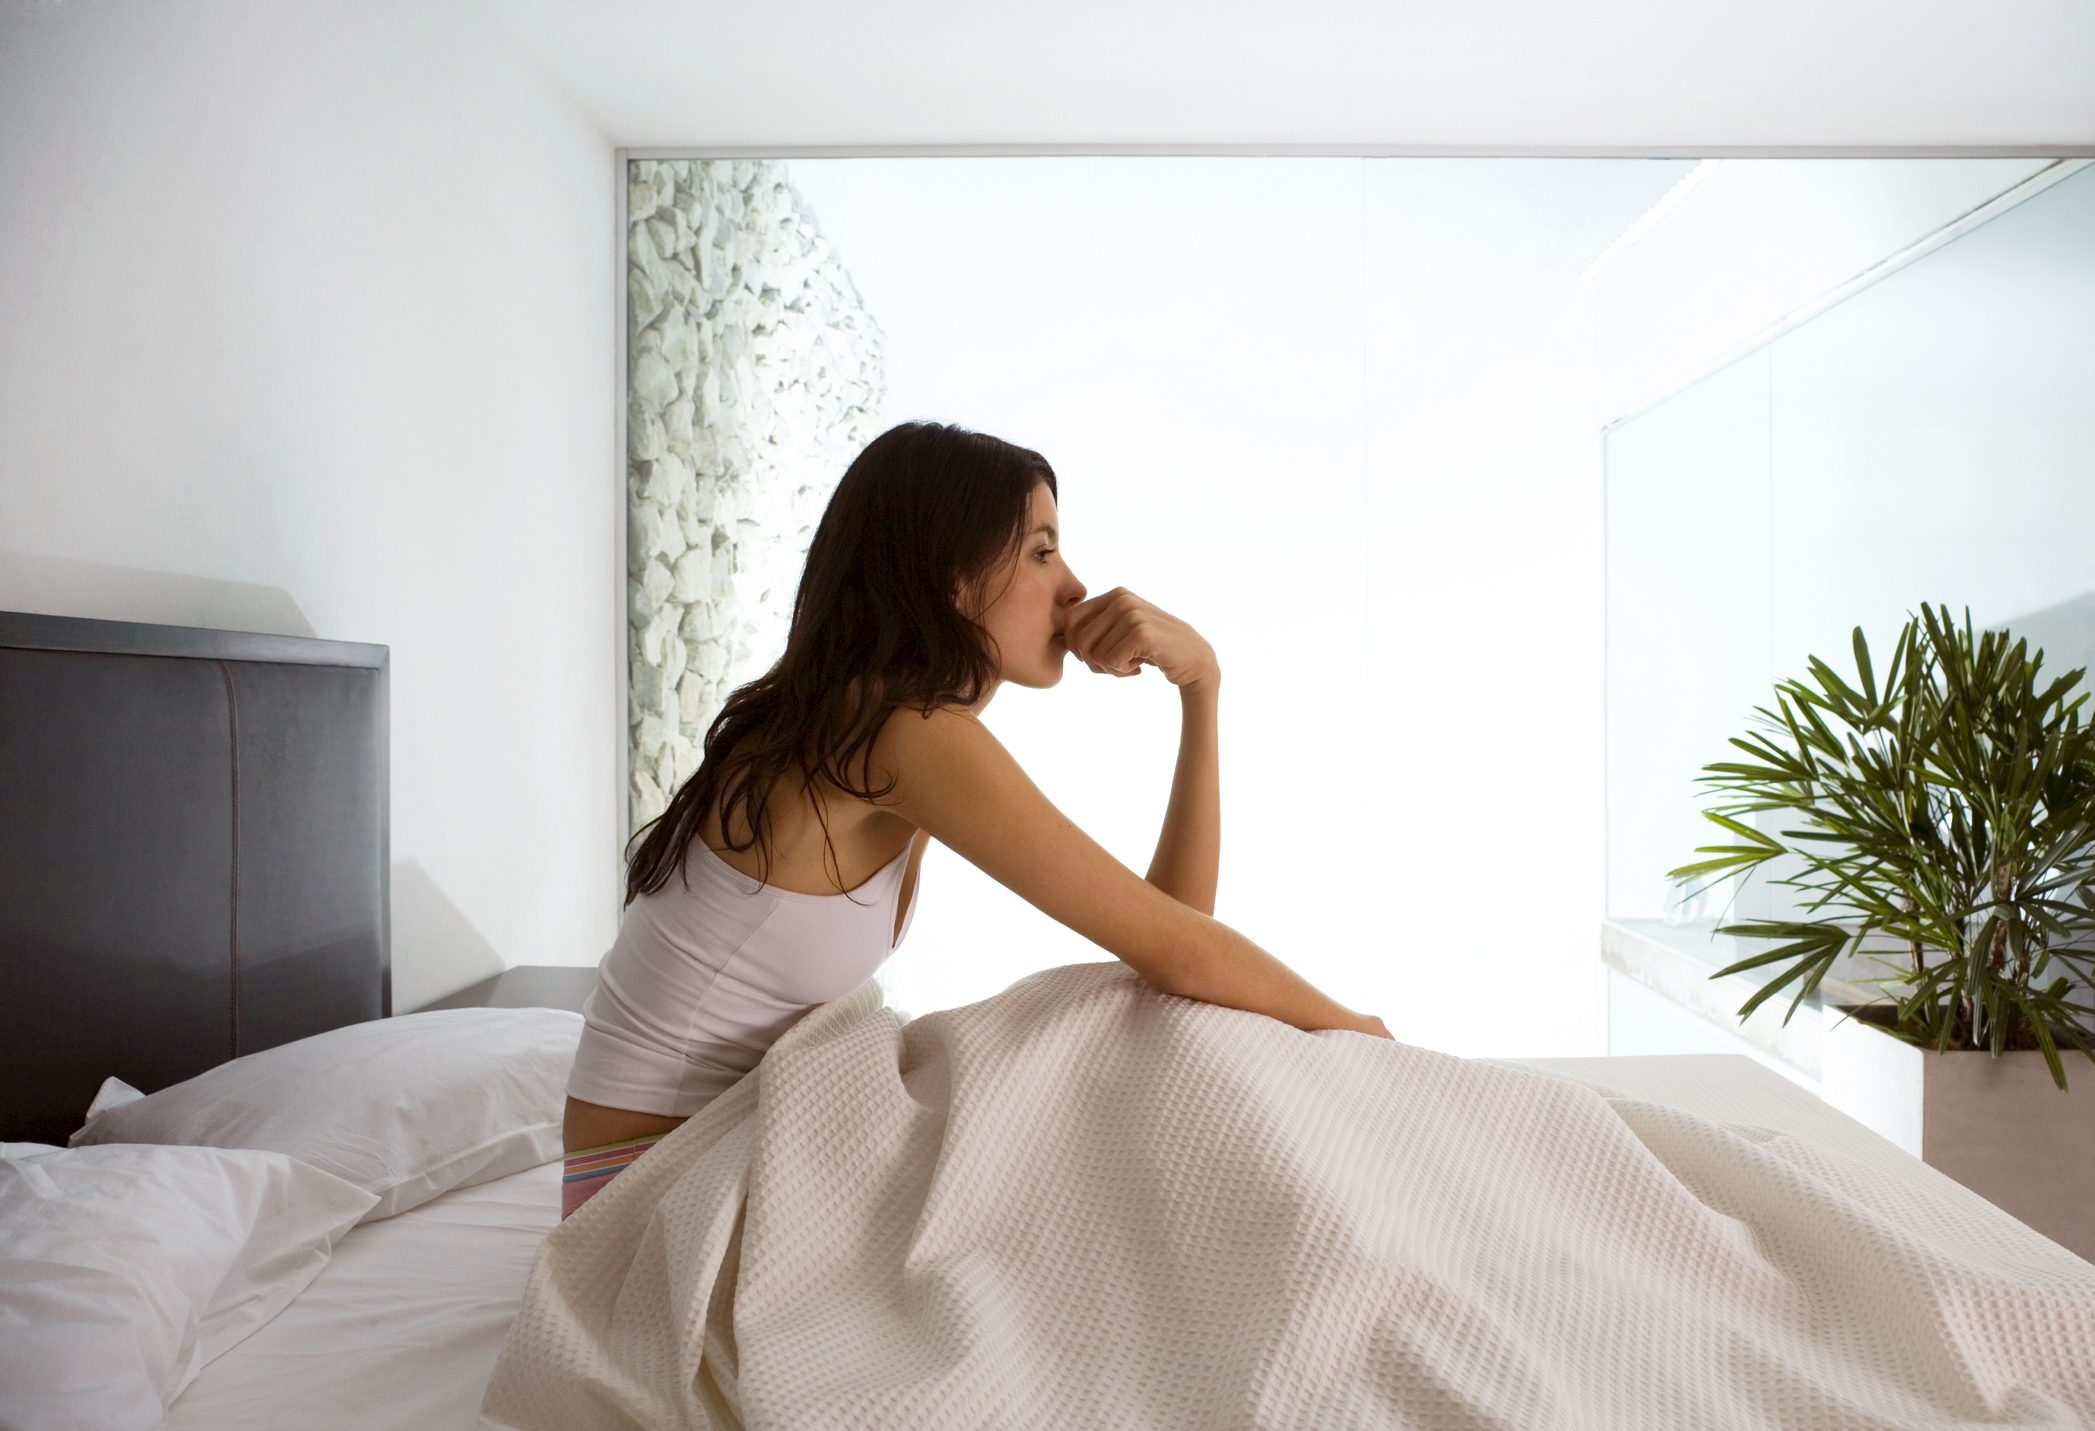 woman sitting up in bed biting nails